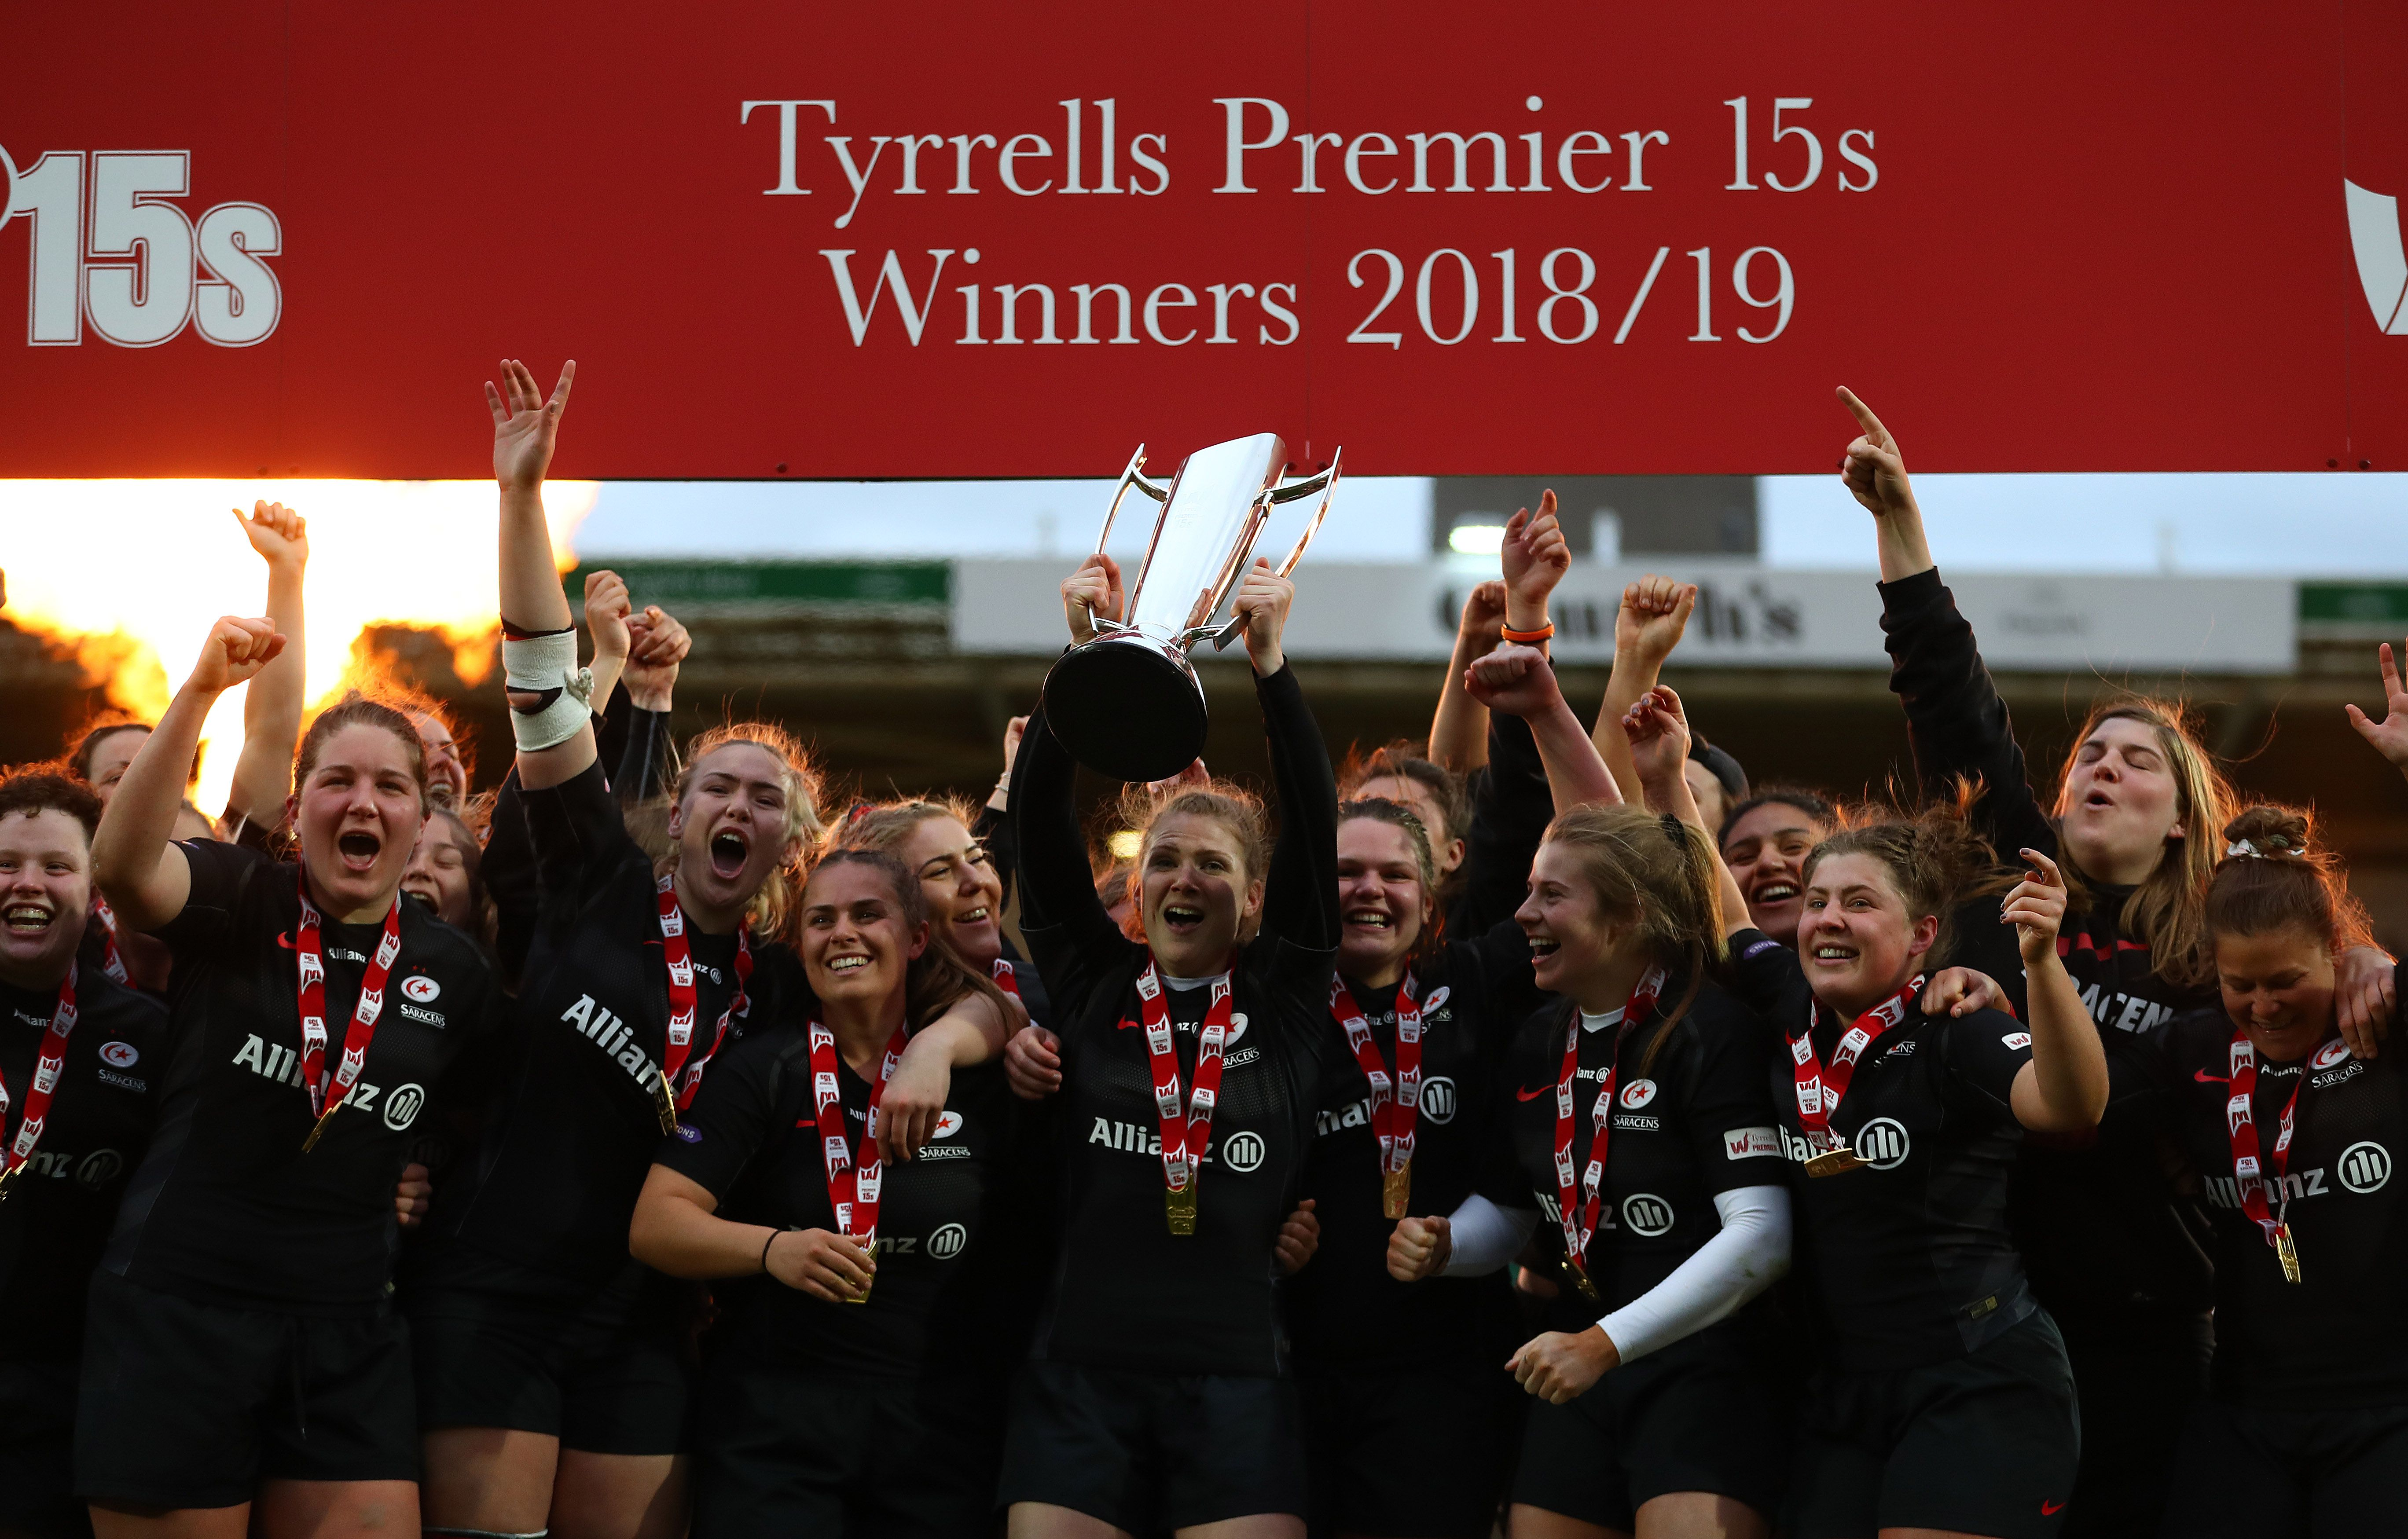 English Women's Club Rugby Players To Be Paid For The First Time And It's Long Overdue